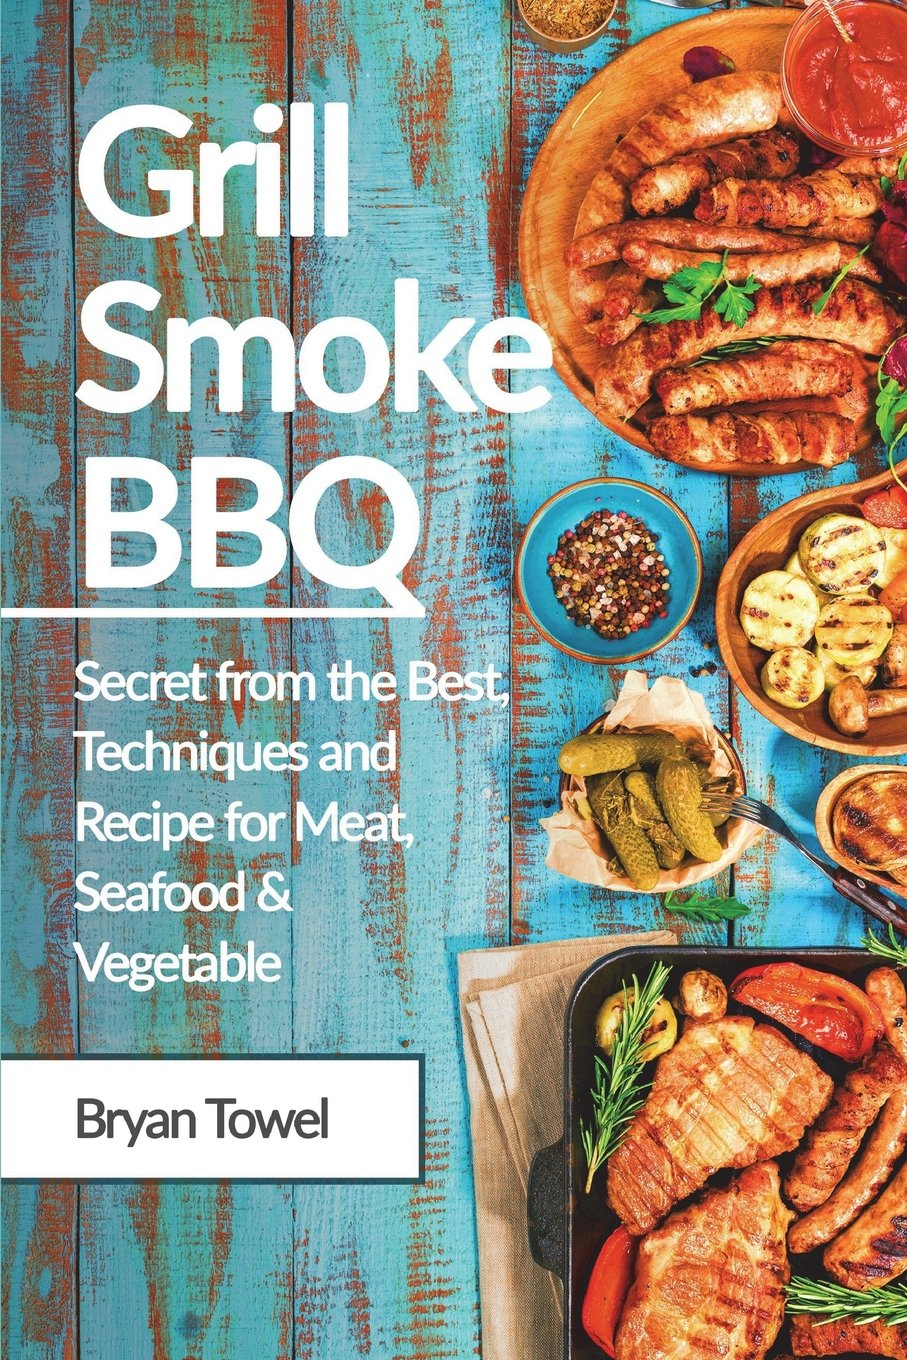 Grill Smoke BBQ: Secret from the Best, Techniques and Recipe for Meat, Seafood and Vegetable (CookBook) pdf